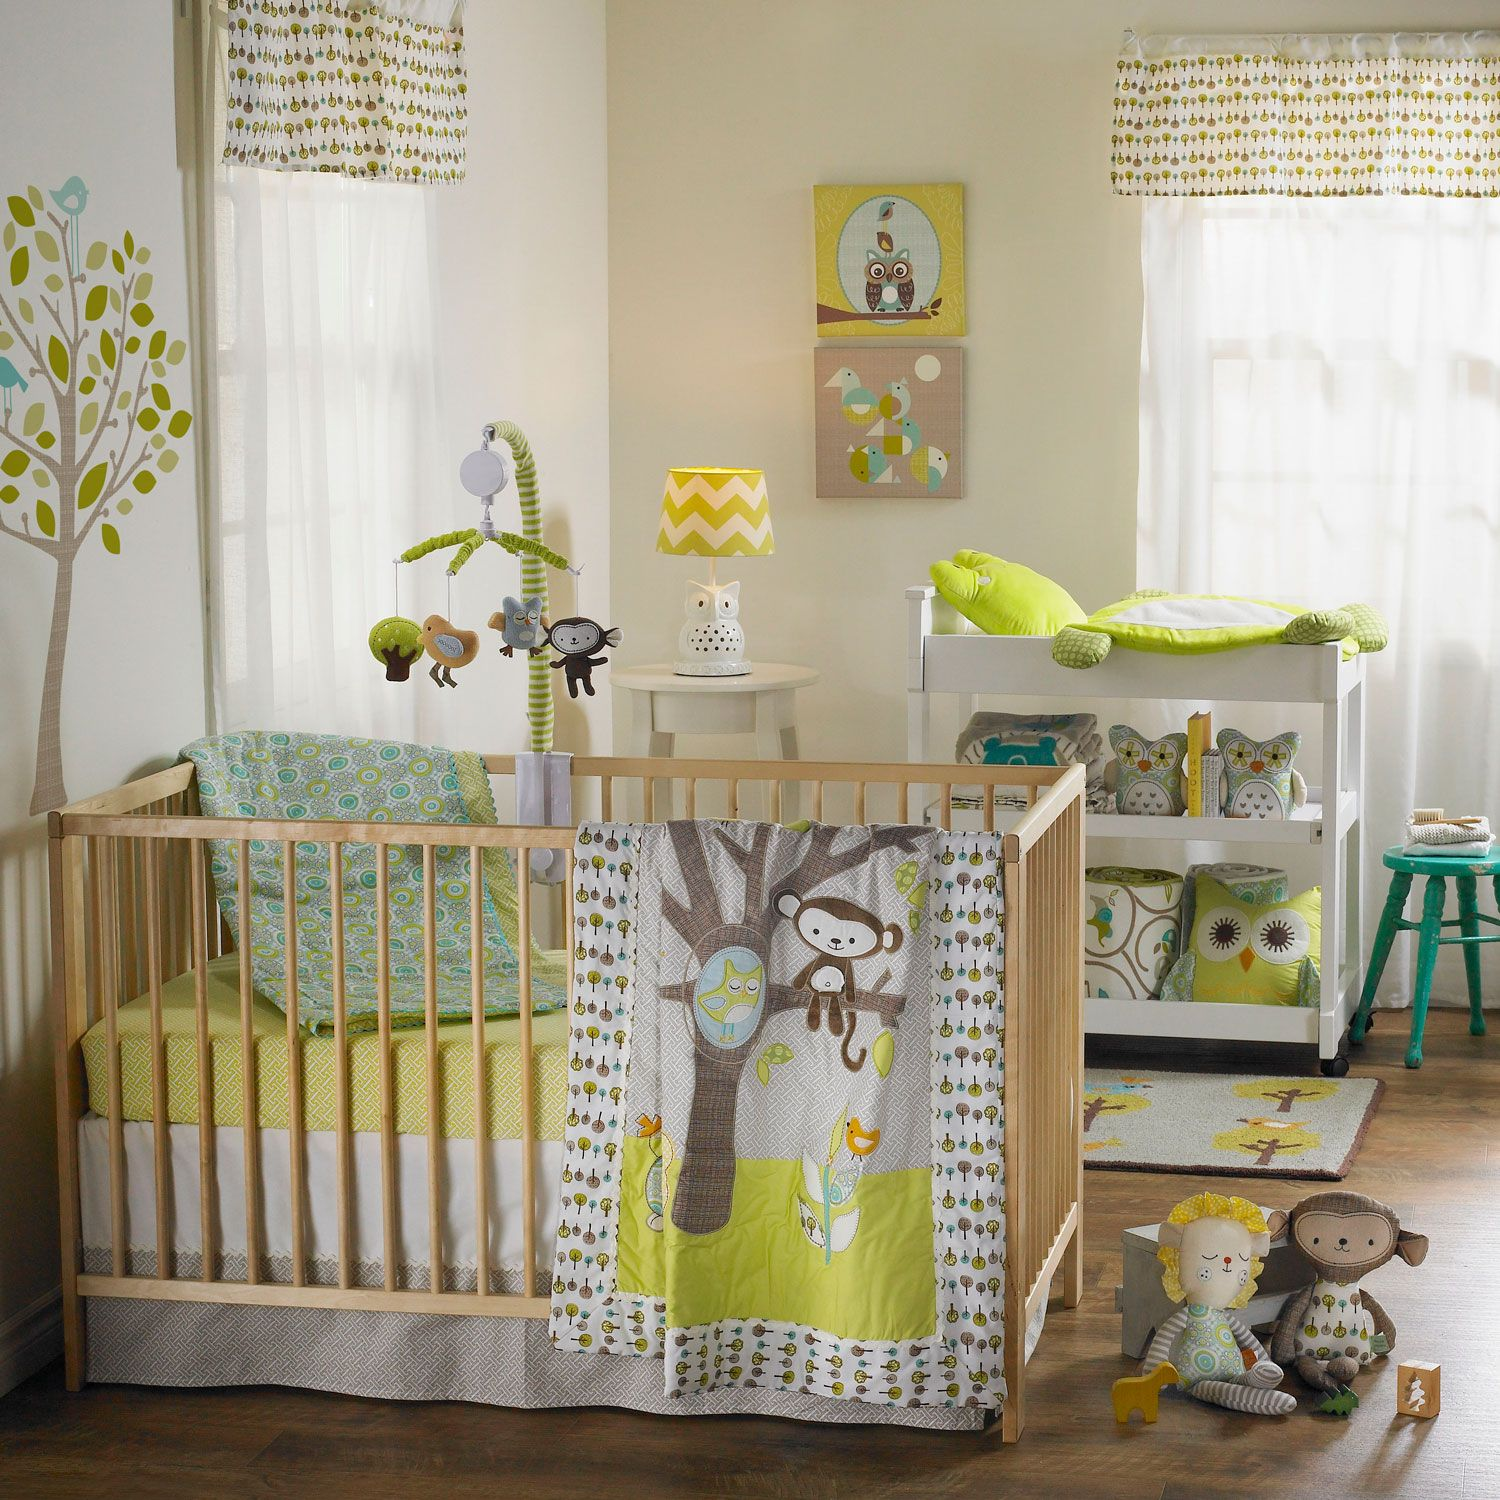 Animal Tree Baby Beddings Nursery Bedding Sets Crib Sheet And Accessories From Lolli